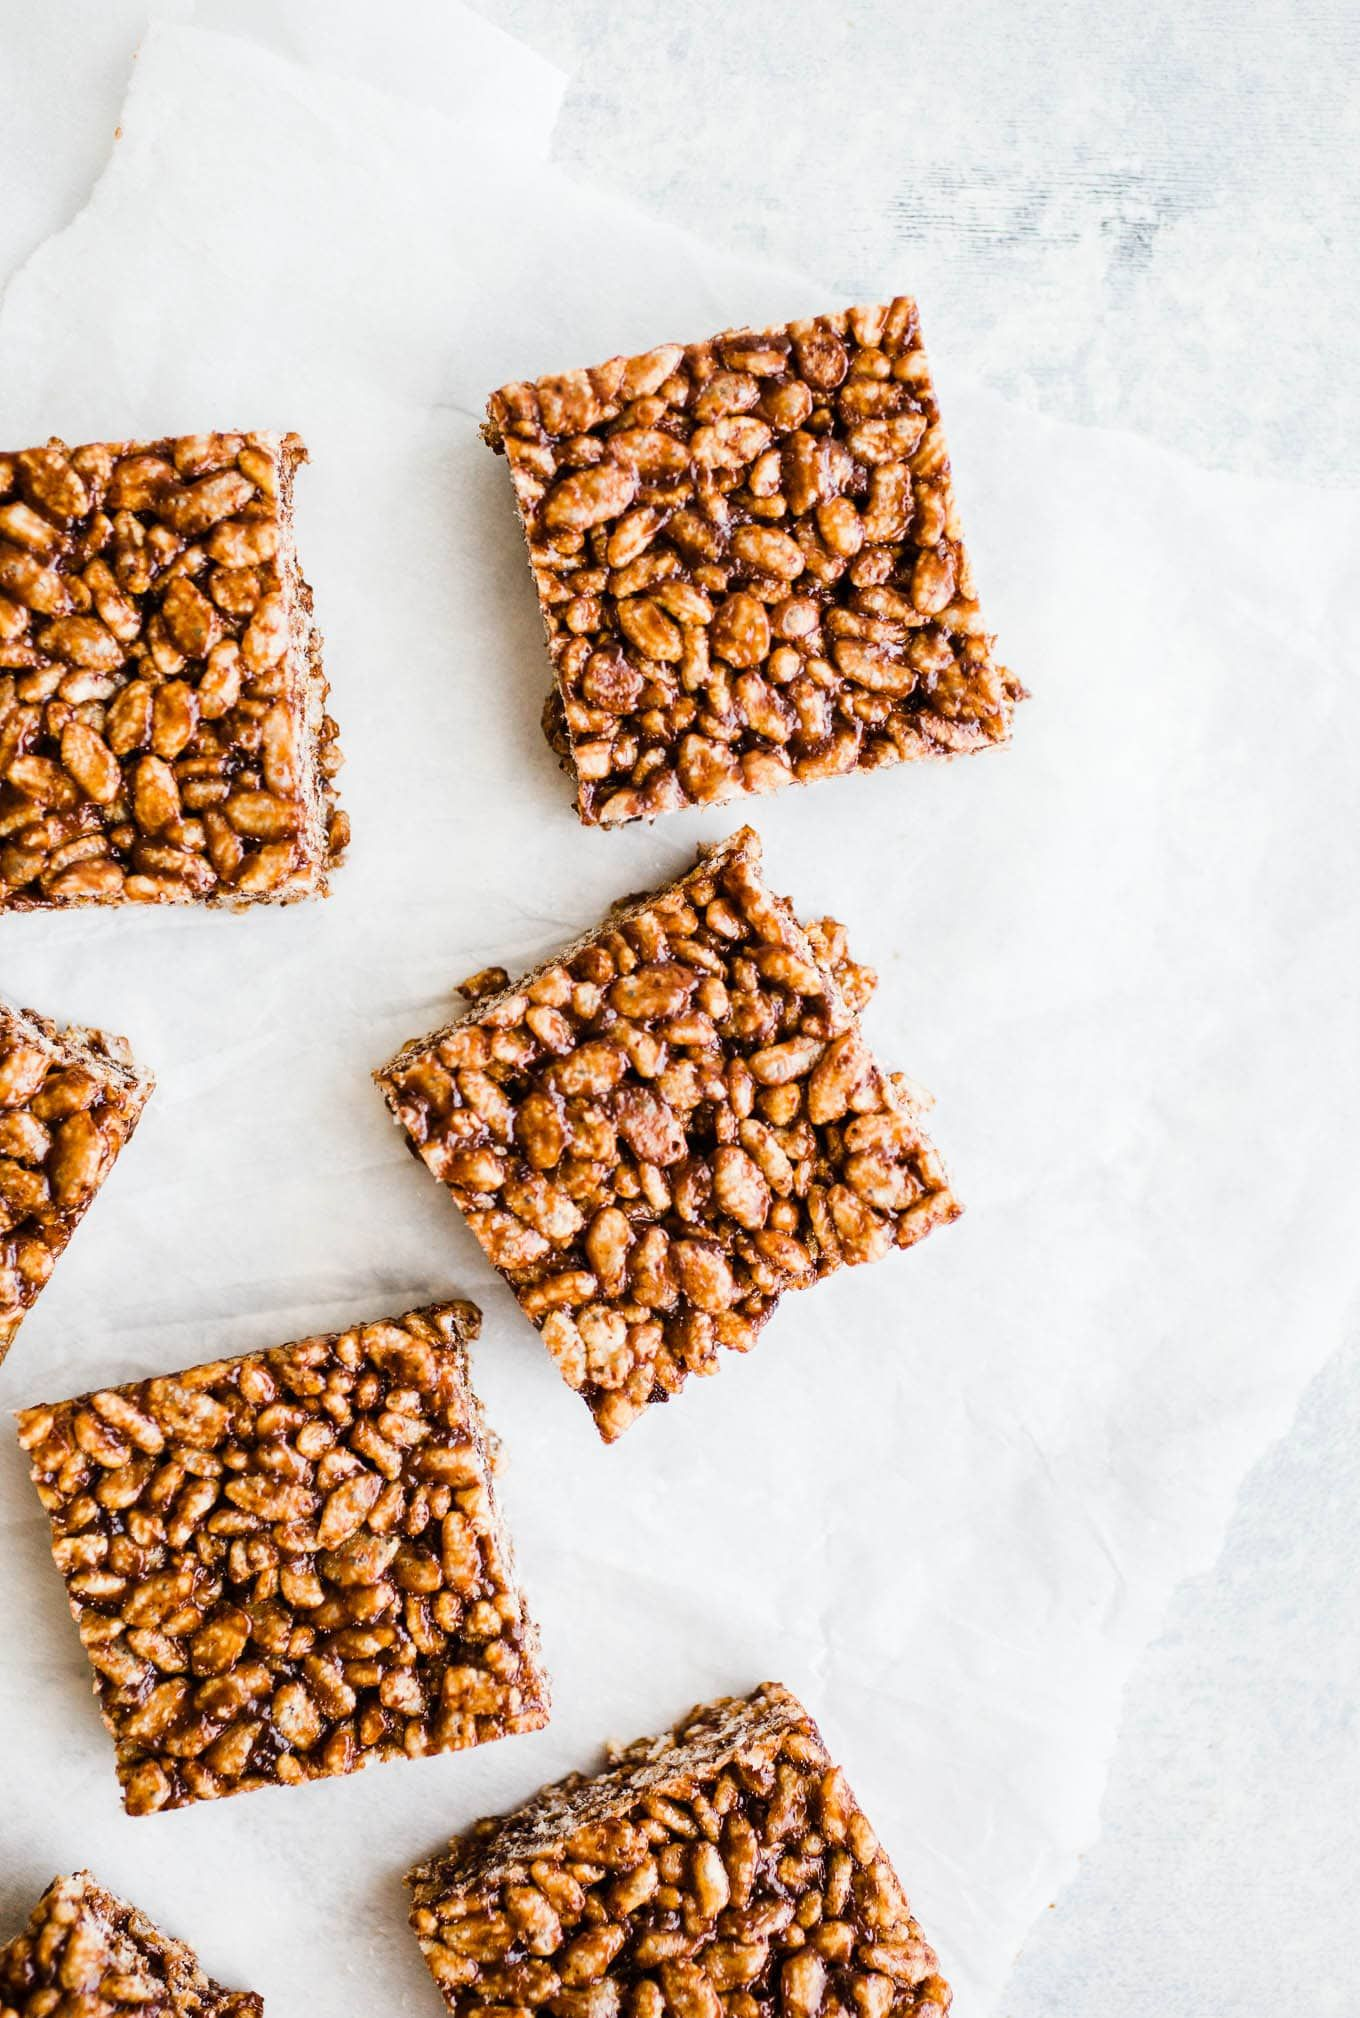 These Chocolate Rice Crispy Treats are made with brown